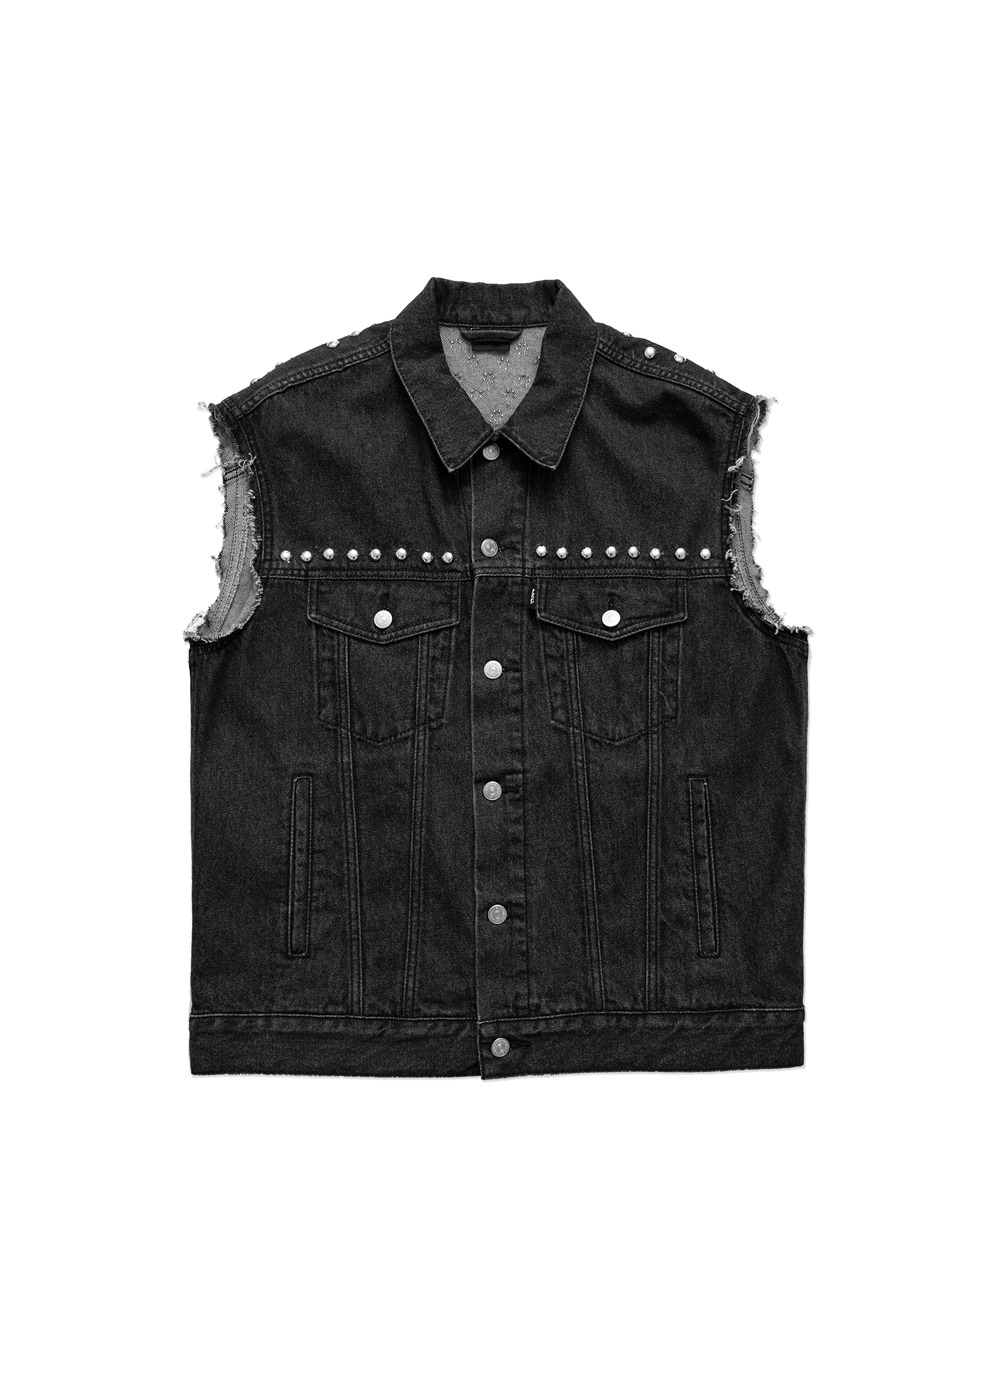 LMC STUDDED OG DENIM VEST black